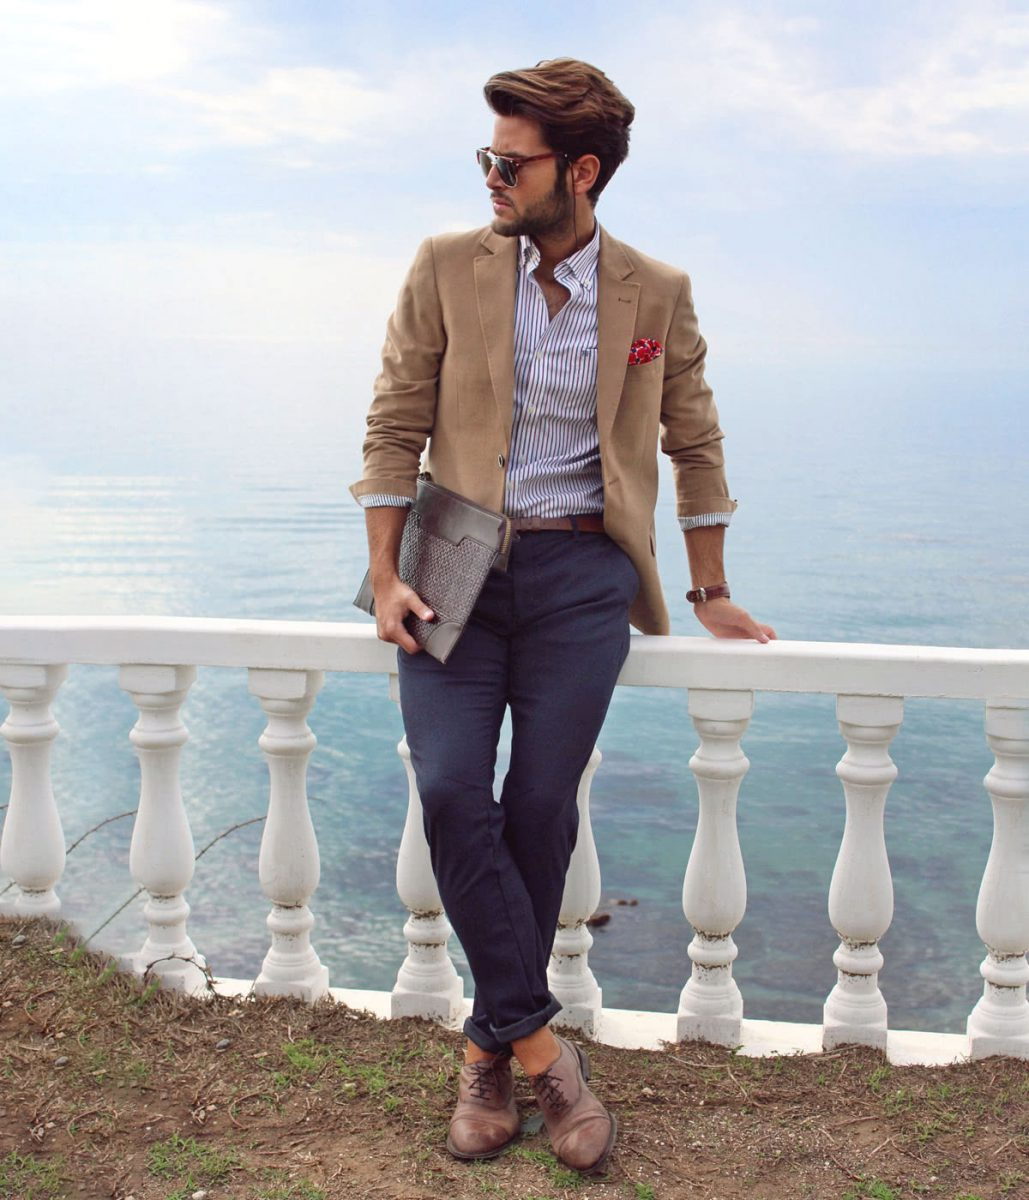 A perfect execution of the summer smart casual look.